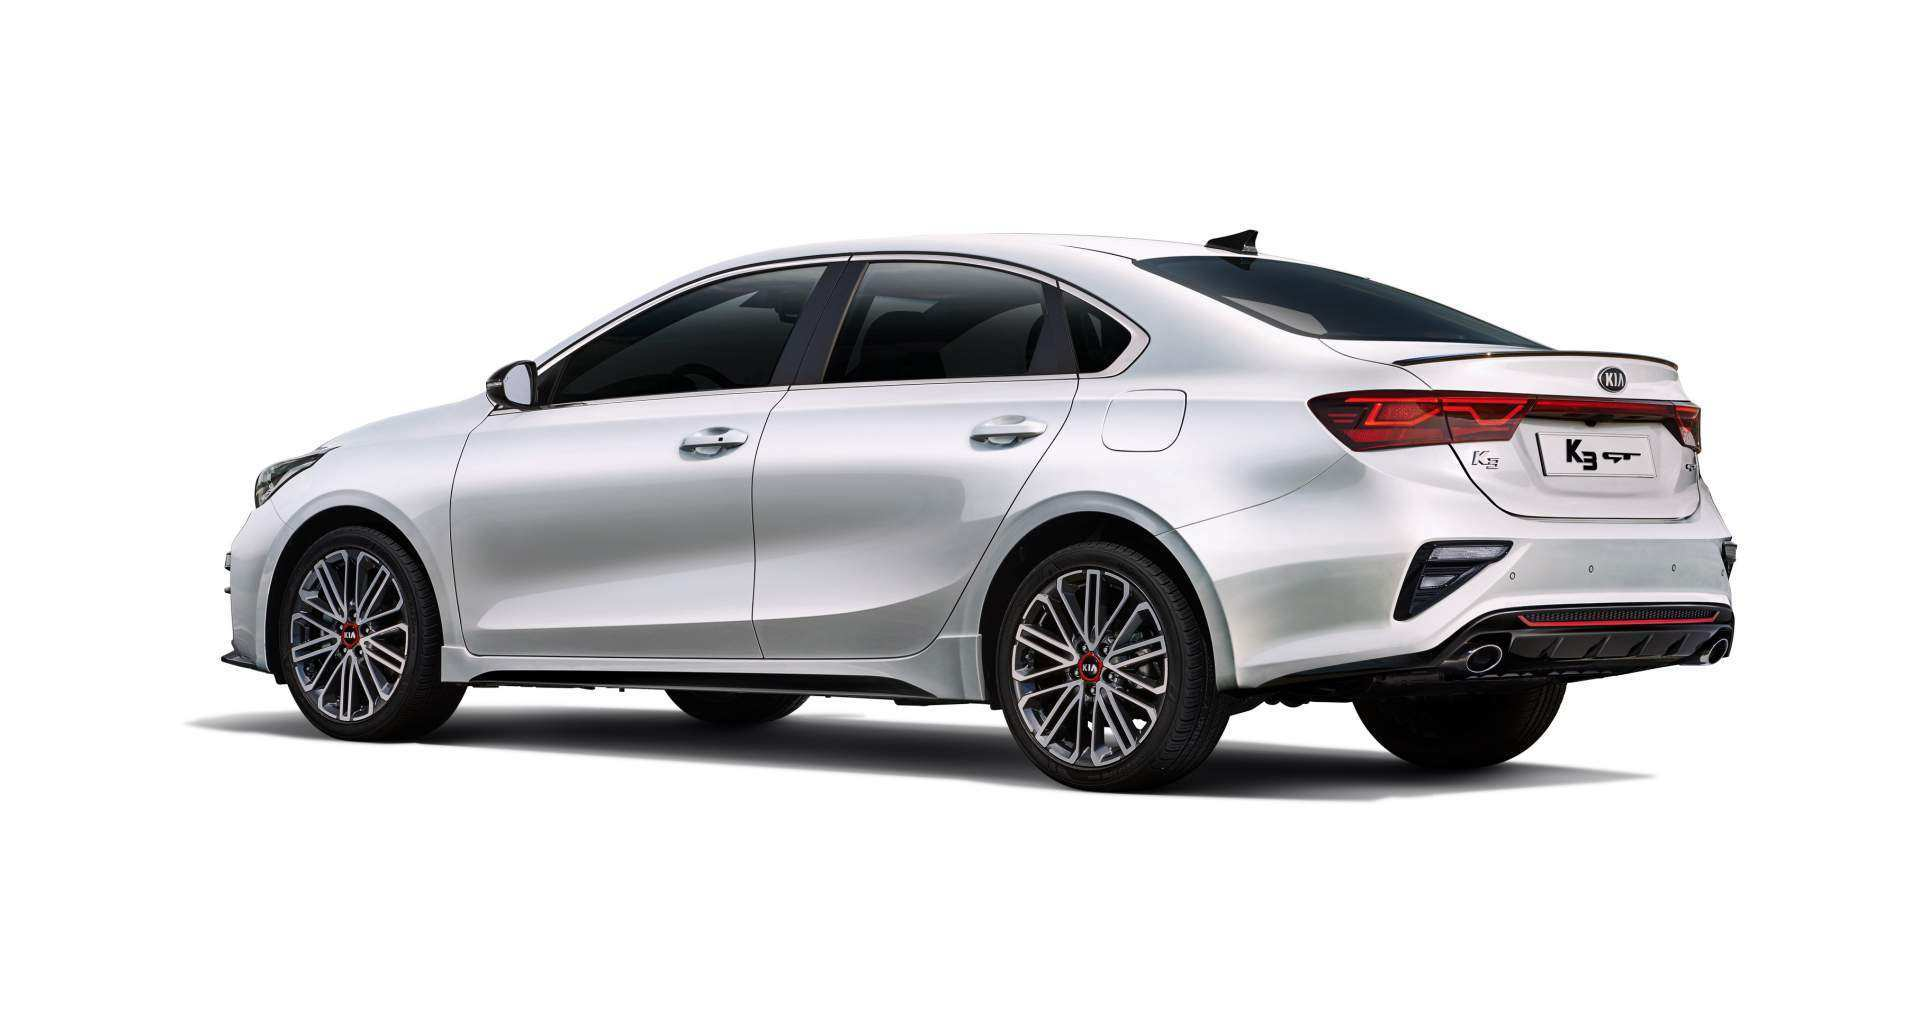 68 New Kia Forte Gt 2020 Images with Kia Forte Gt 2020